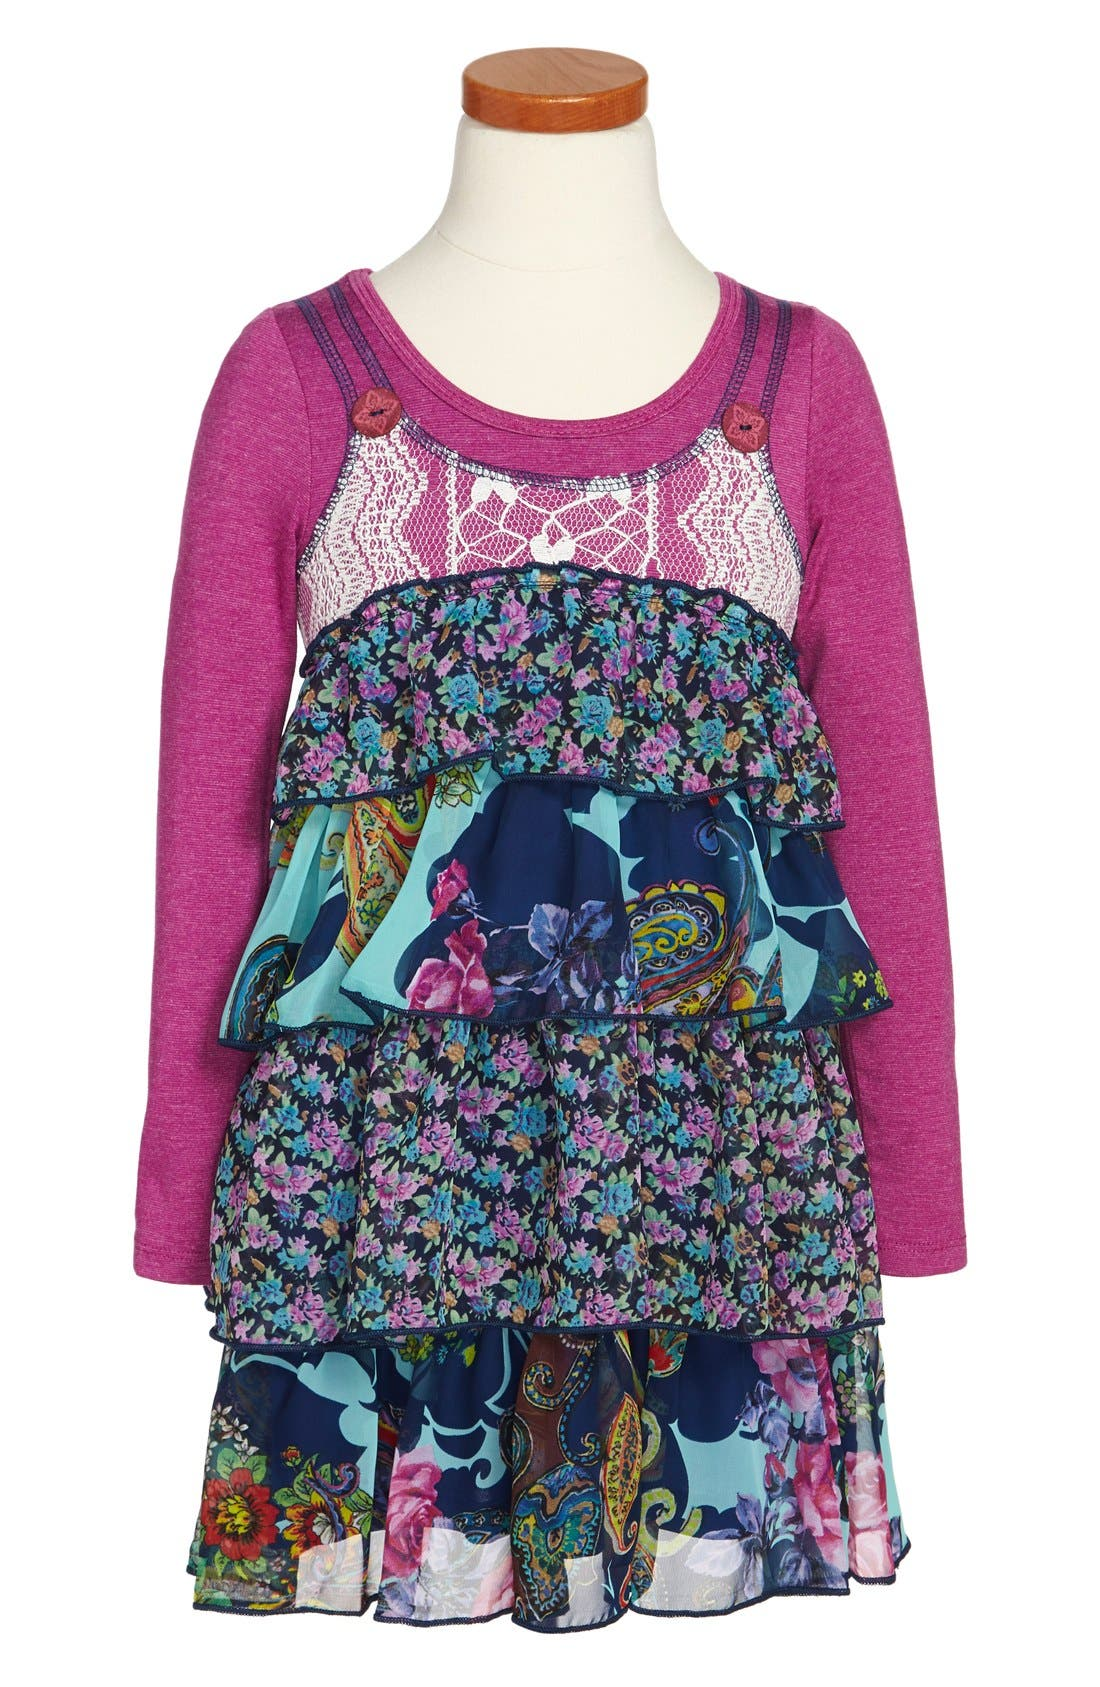 Alternate Image 1 Selected - Truly Me Tiered Ruffle Dress (Toddler Girls, Little Girls & Big Girls)